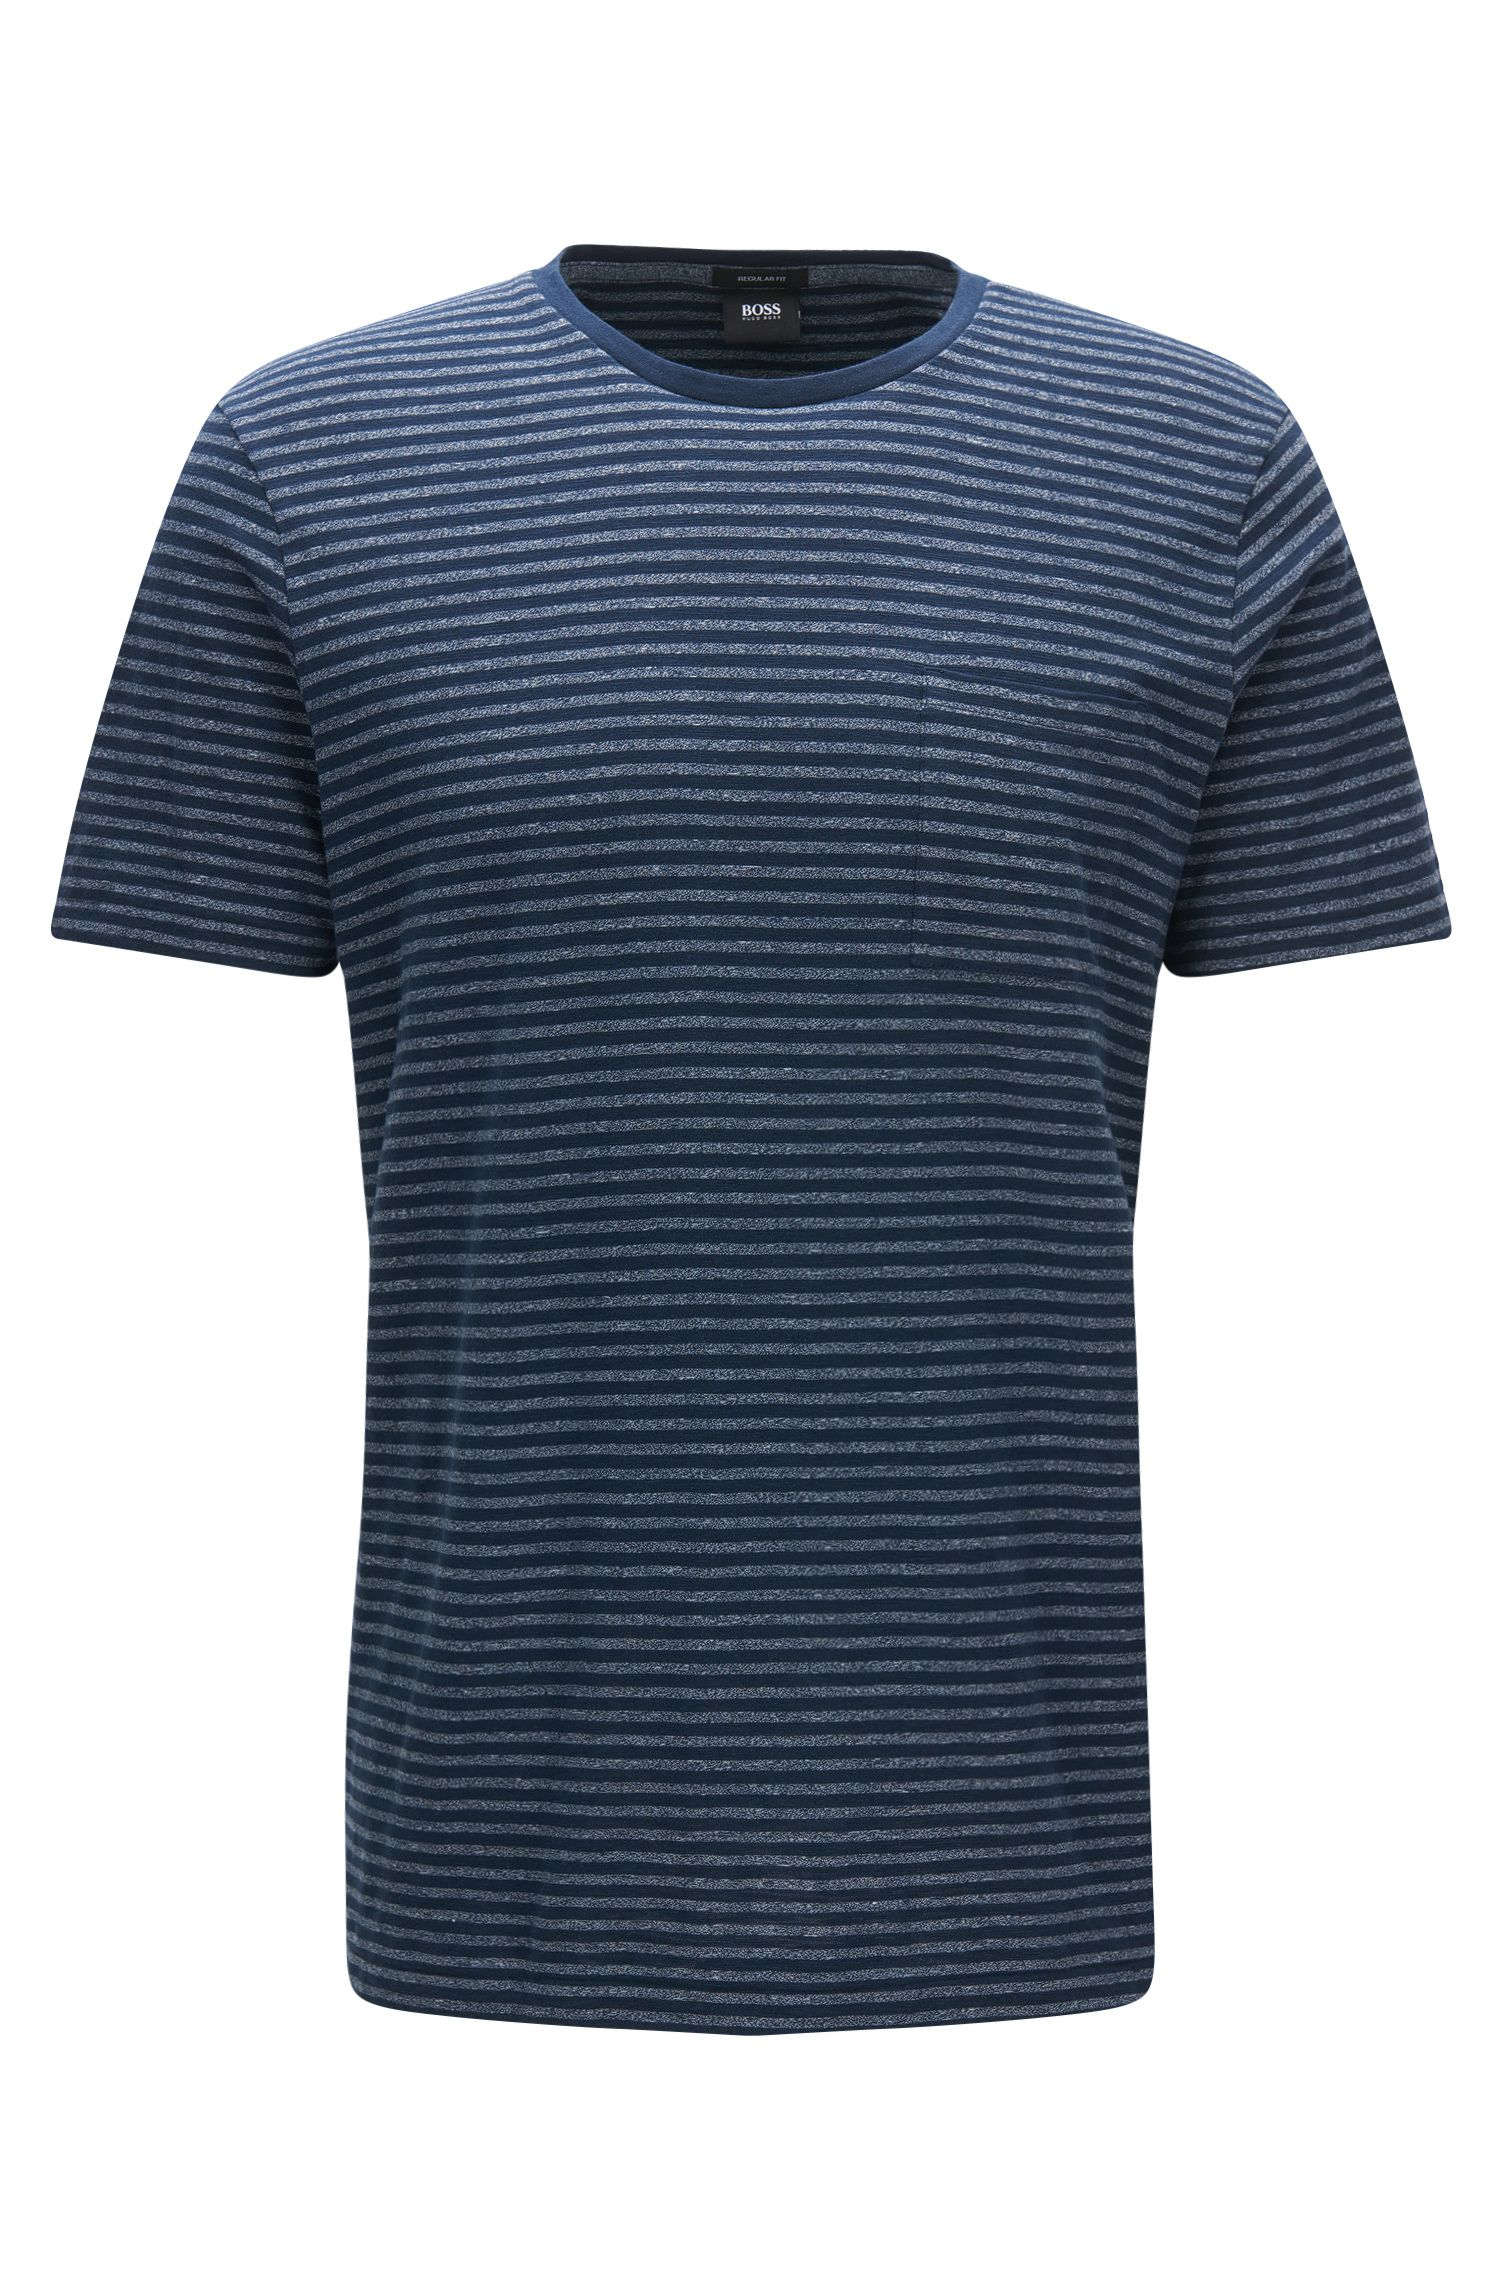 Regular-fit cotton blend T-shirt in mouliné striped fabric